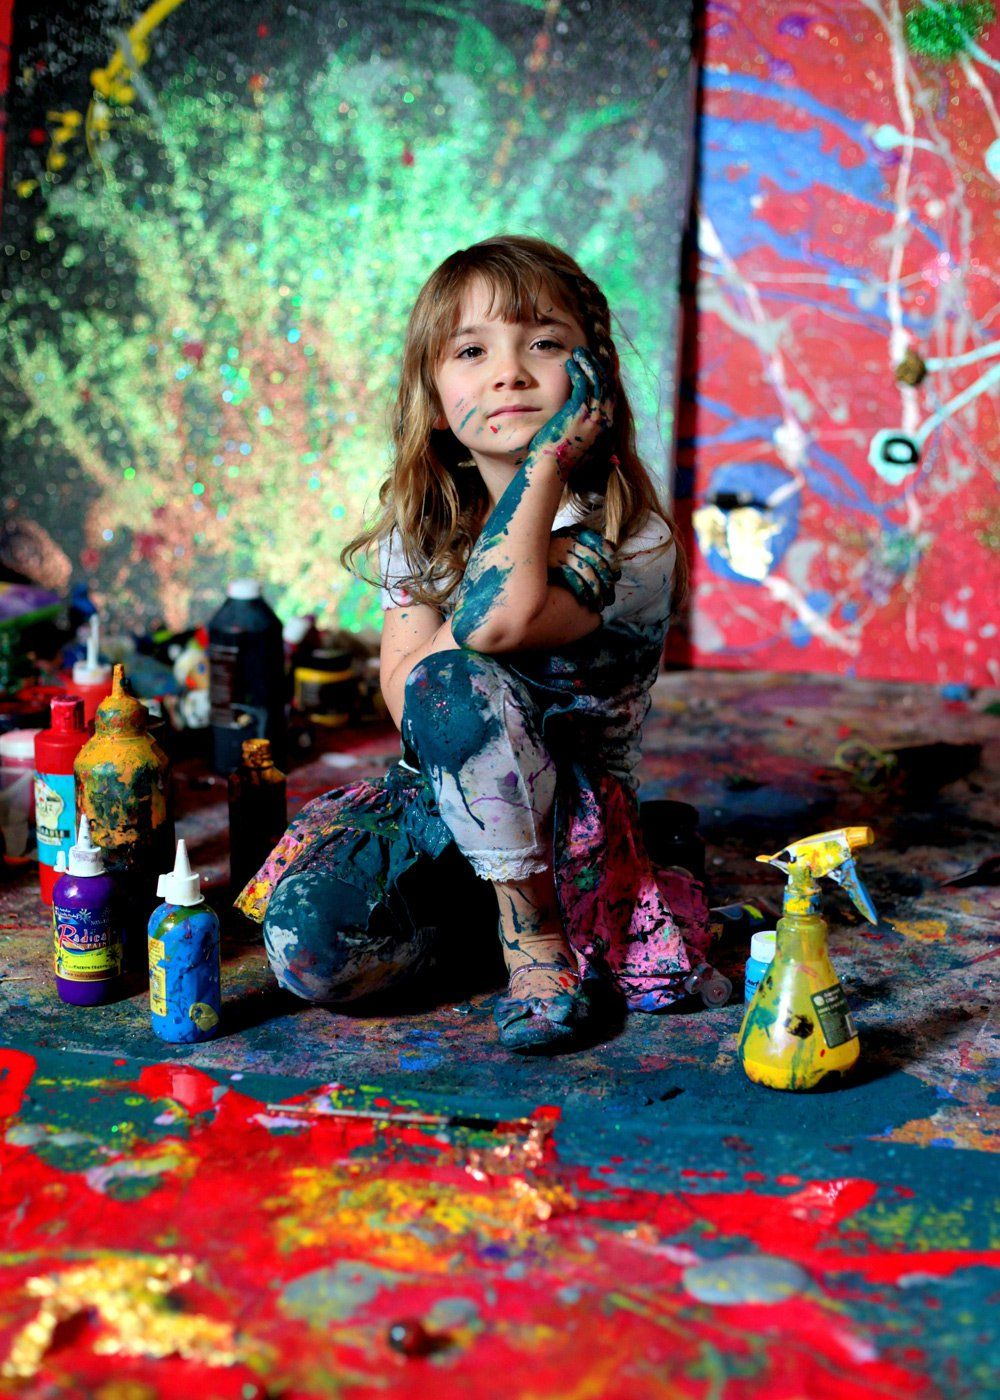 Aelita Andre: The 7-Year-Old Prodigy Stunning The Art ...